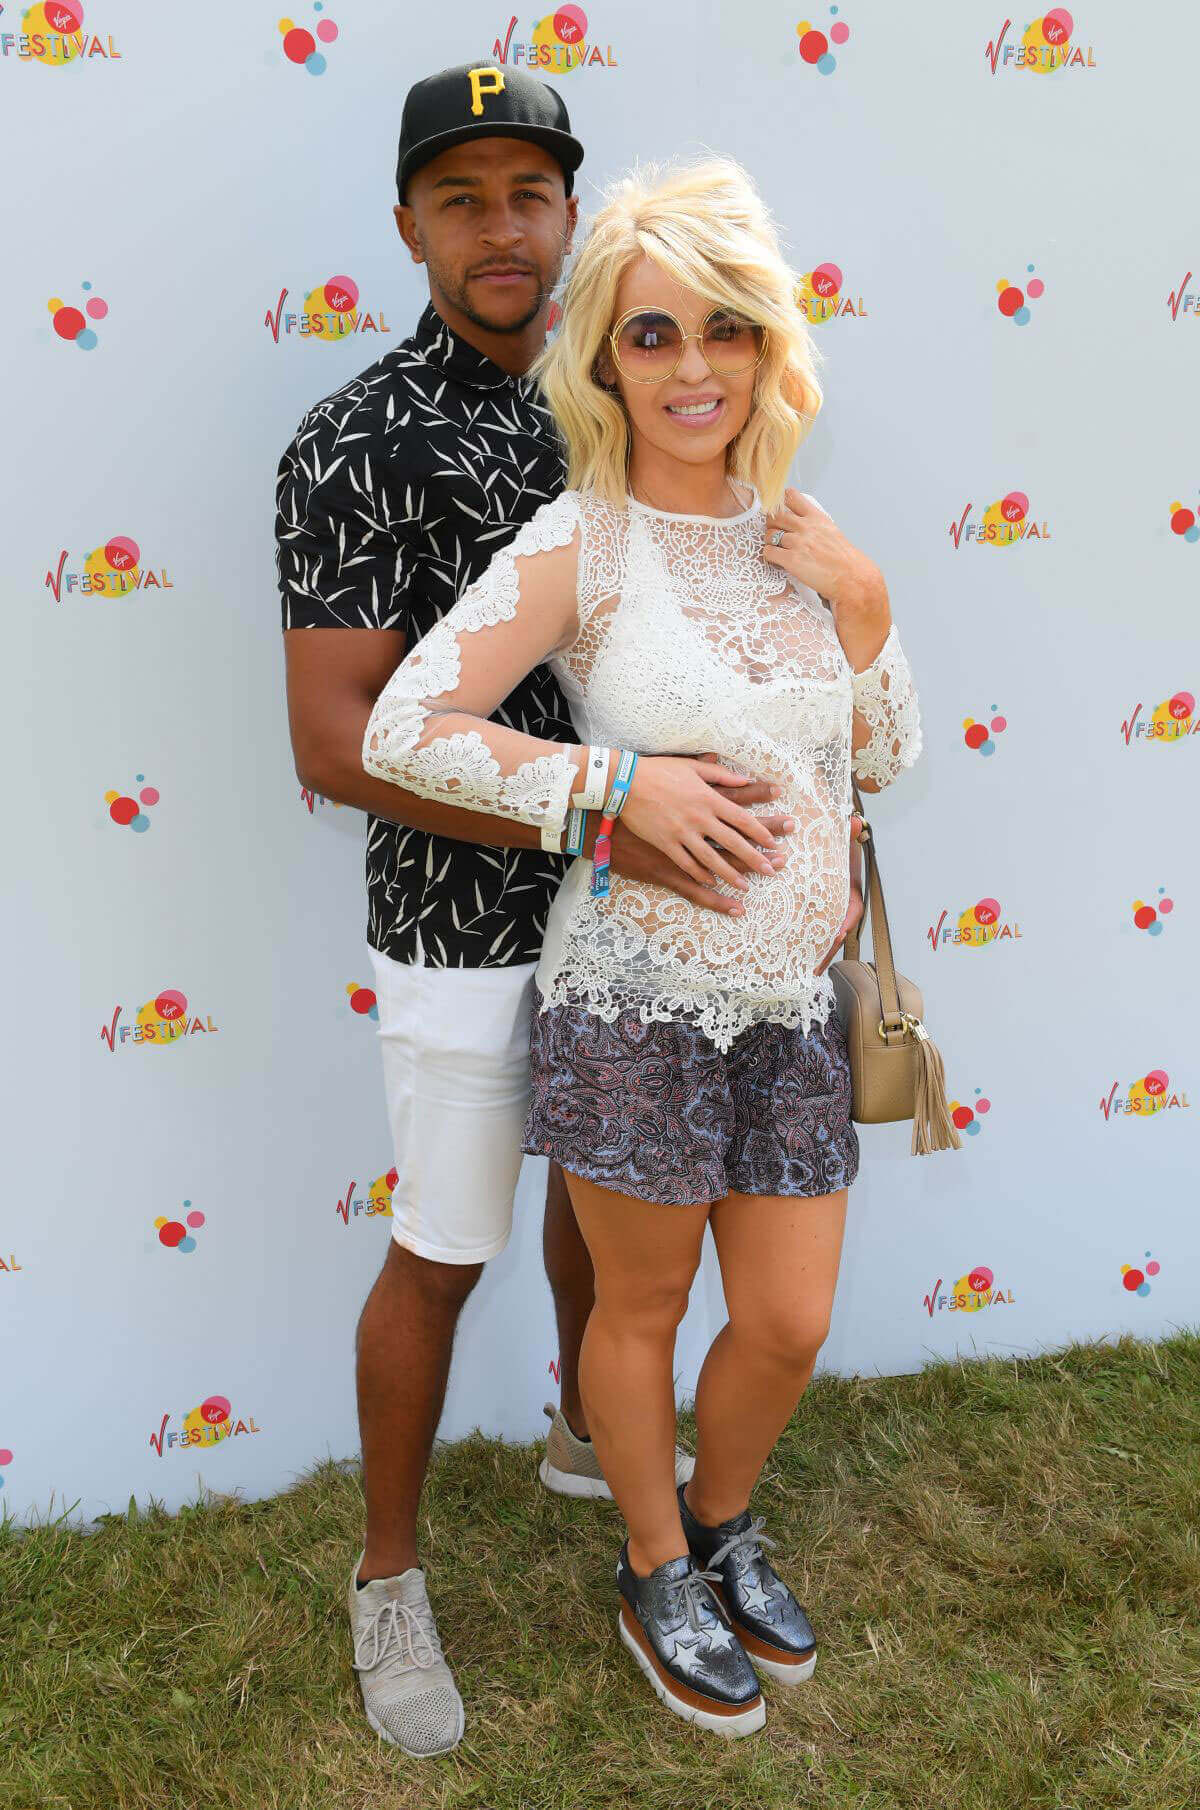 Katie Piper Stills at V Festival in Chelmsford Photos